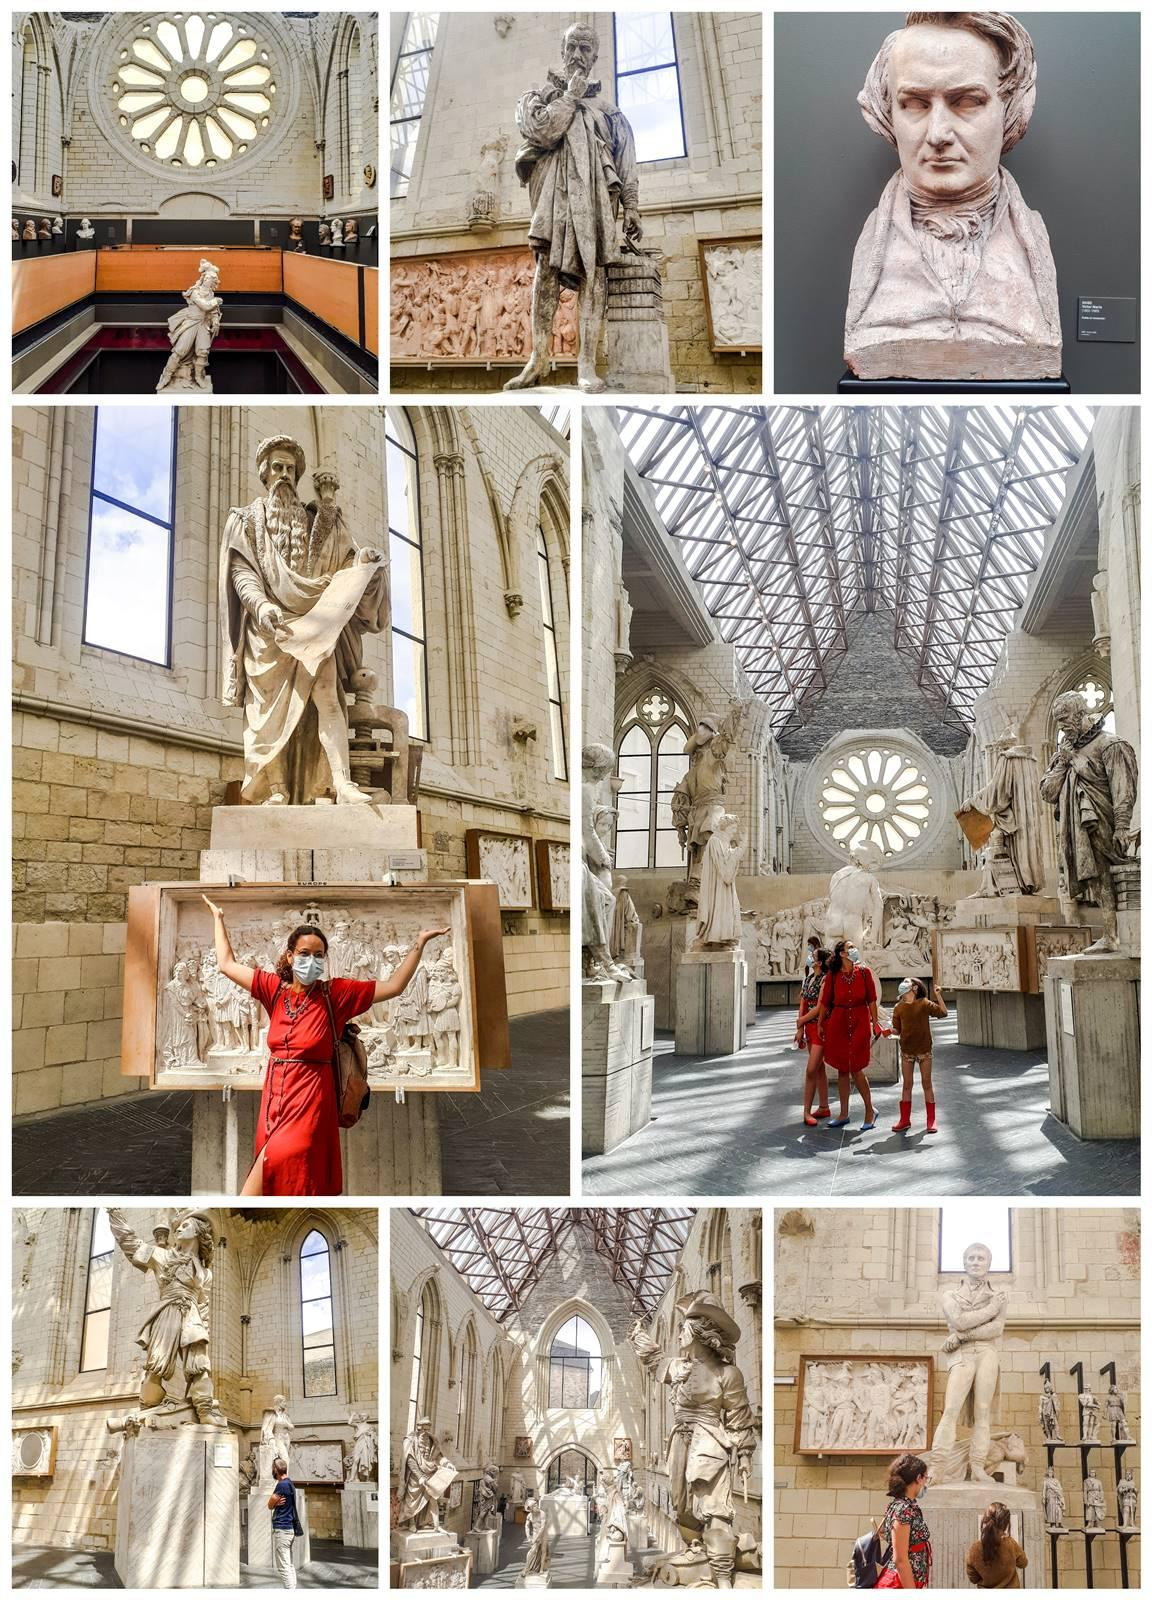 On a visite le musee david d angers a angerspsx 20210724 162300